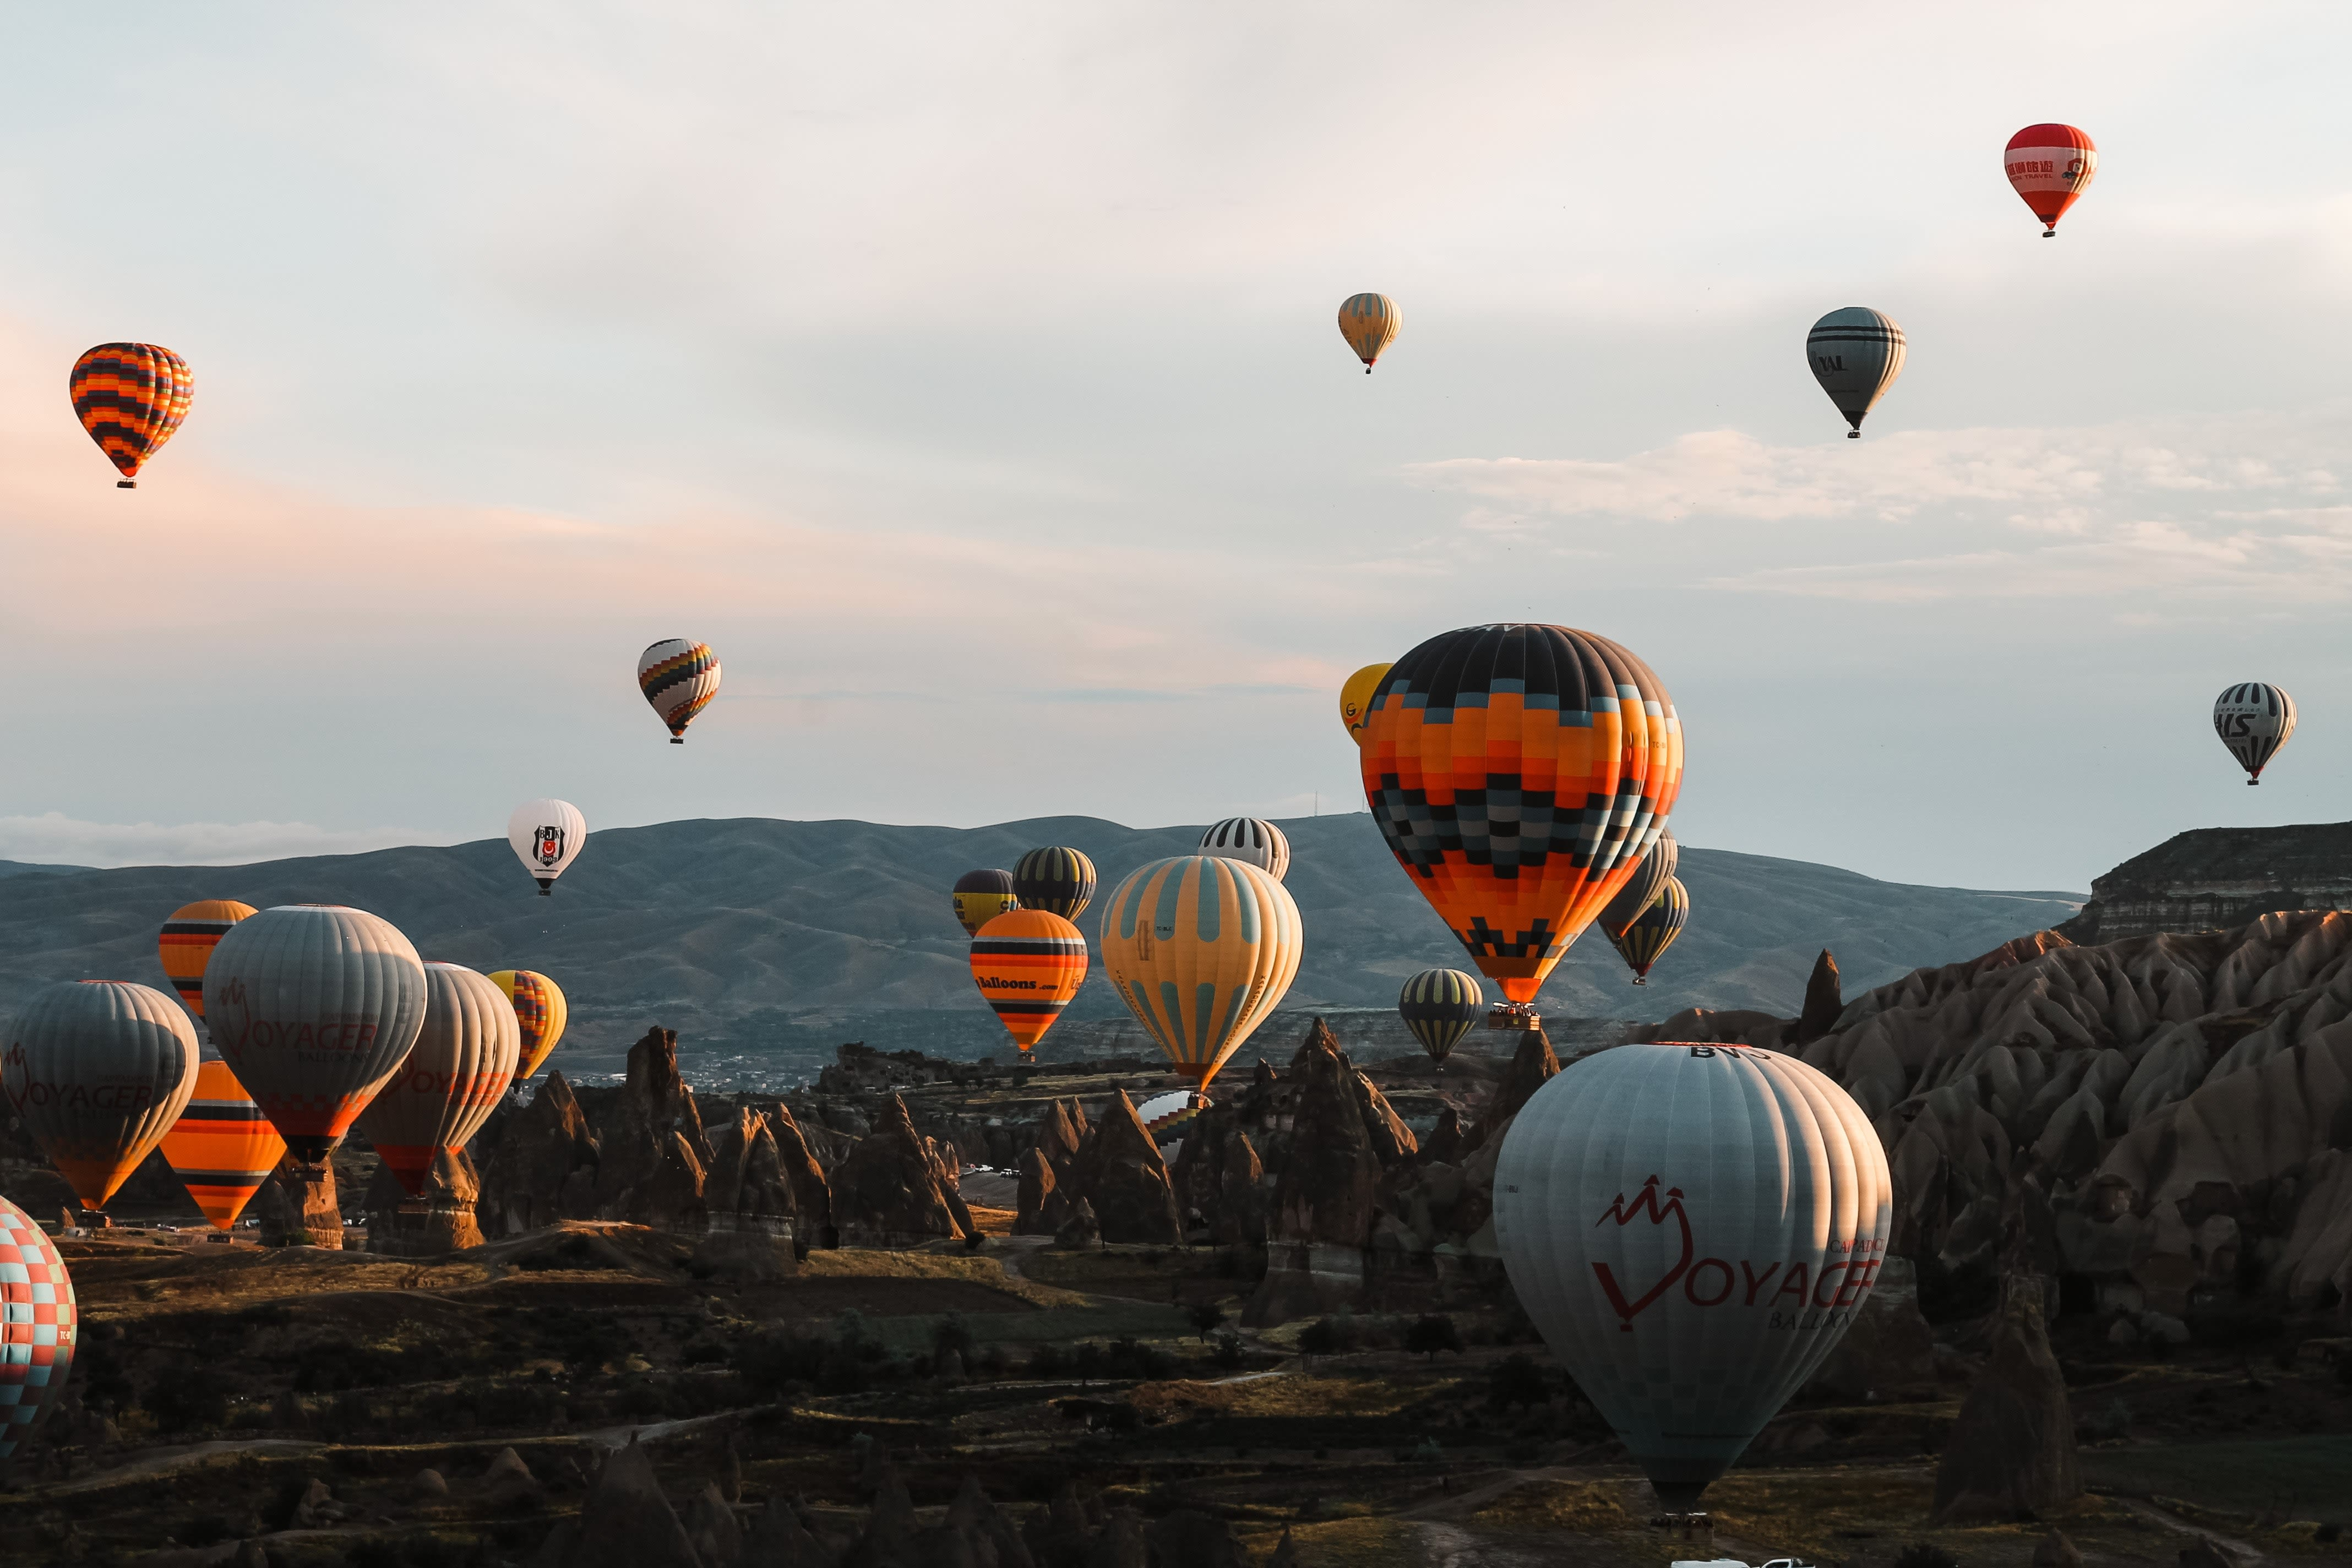 Explore the magical sights of Cappadocia, Turkey Small Preview Image